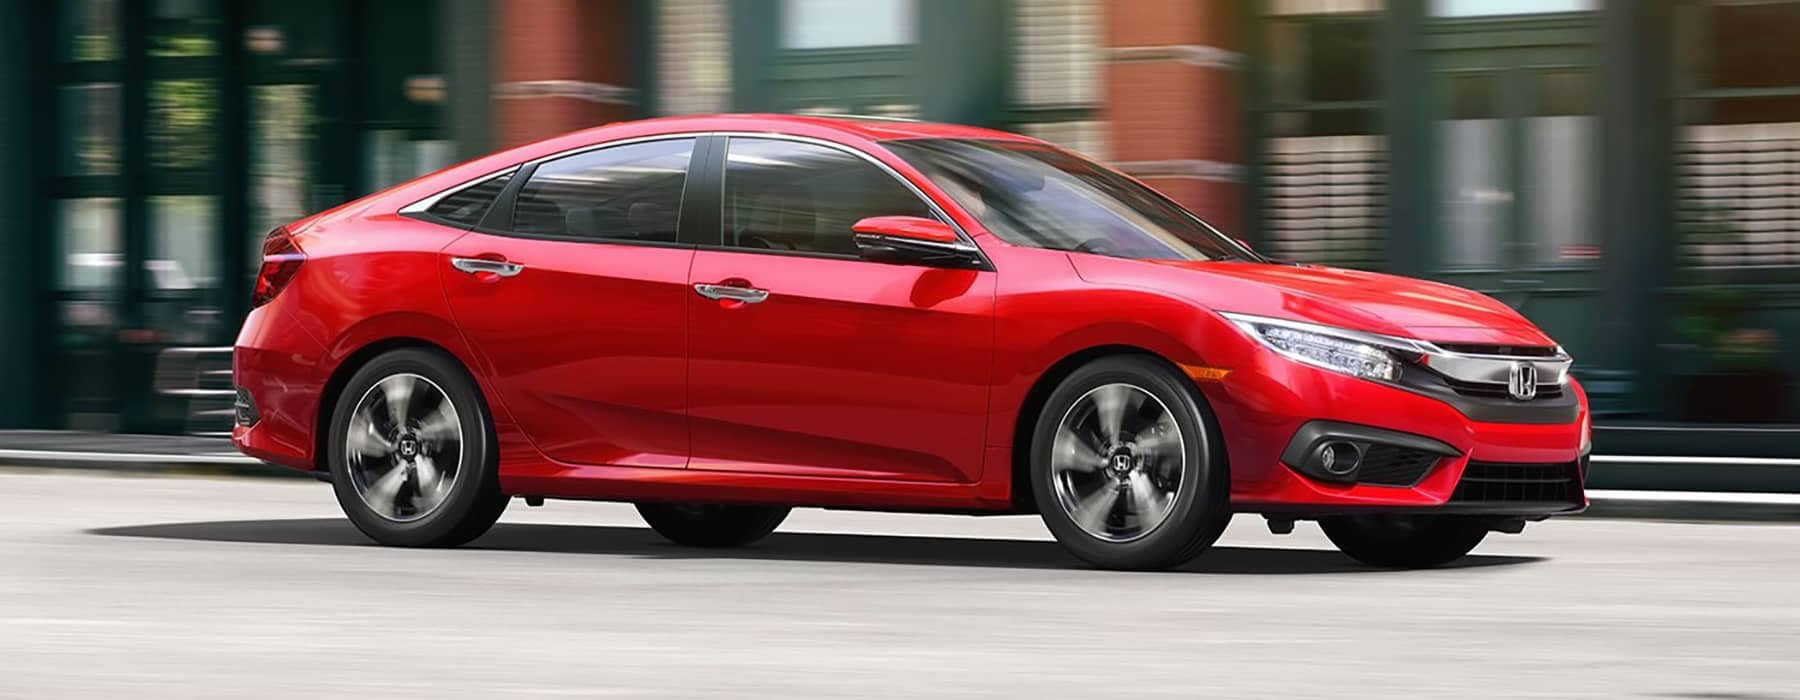 Car safety features understanding active vs passive for Valley honda dealers